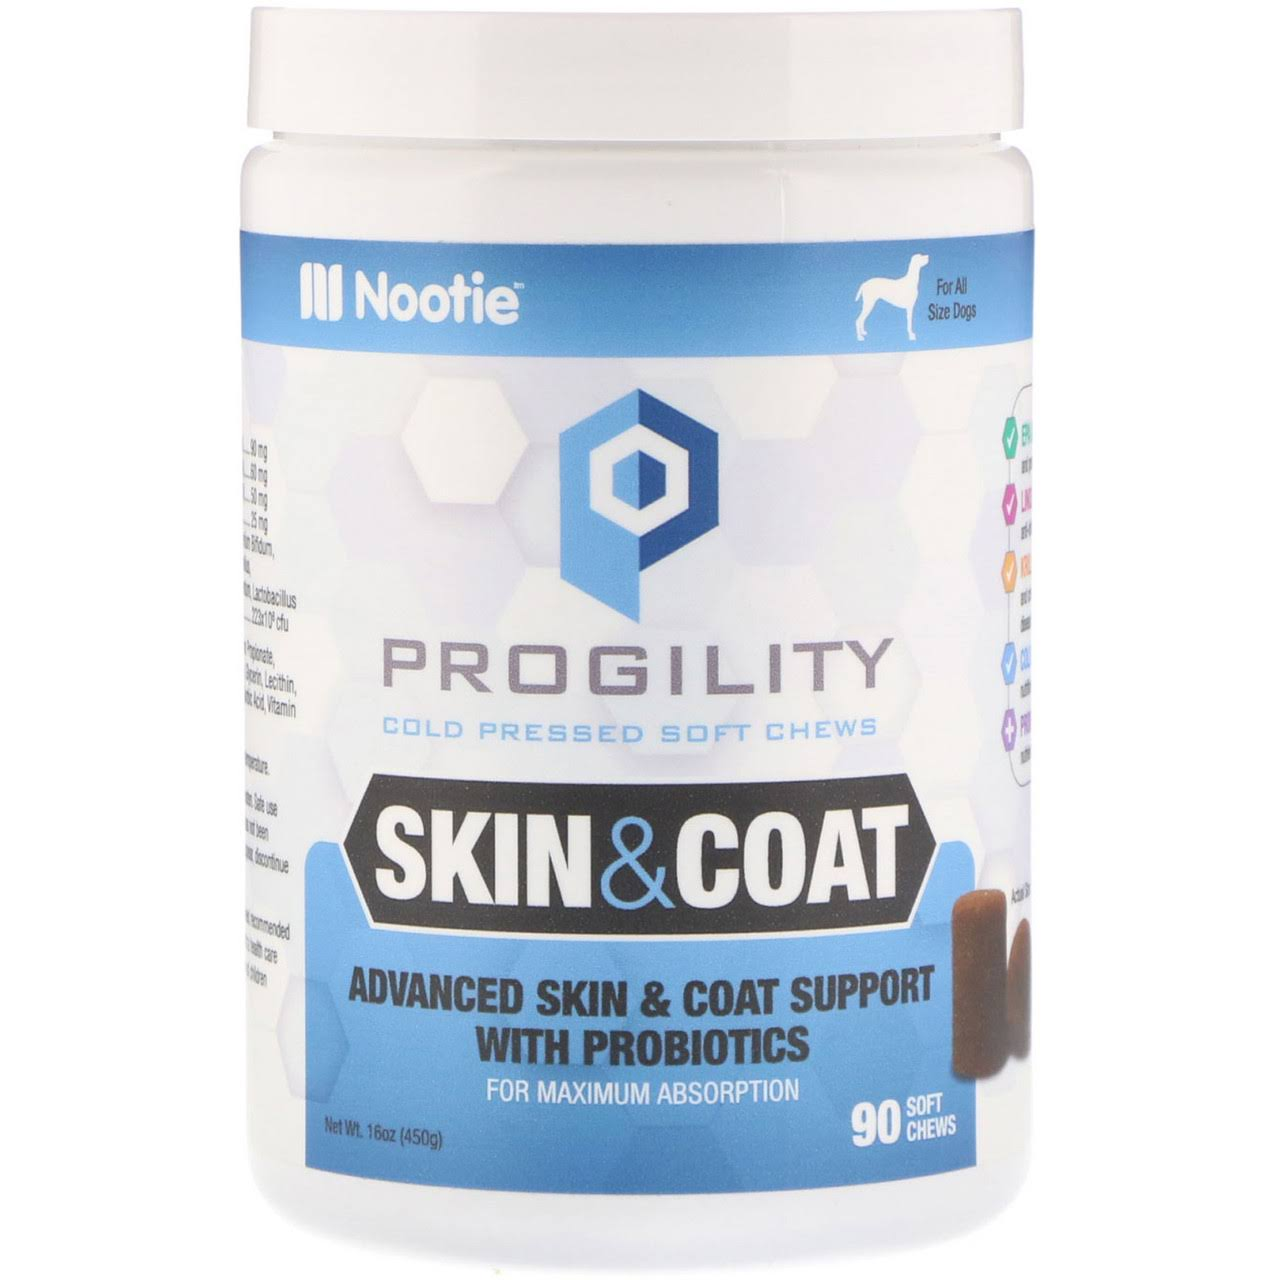 Nootie Progility Skin Coat for Dogs 90 Soft Chews